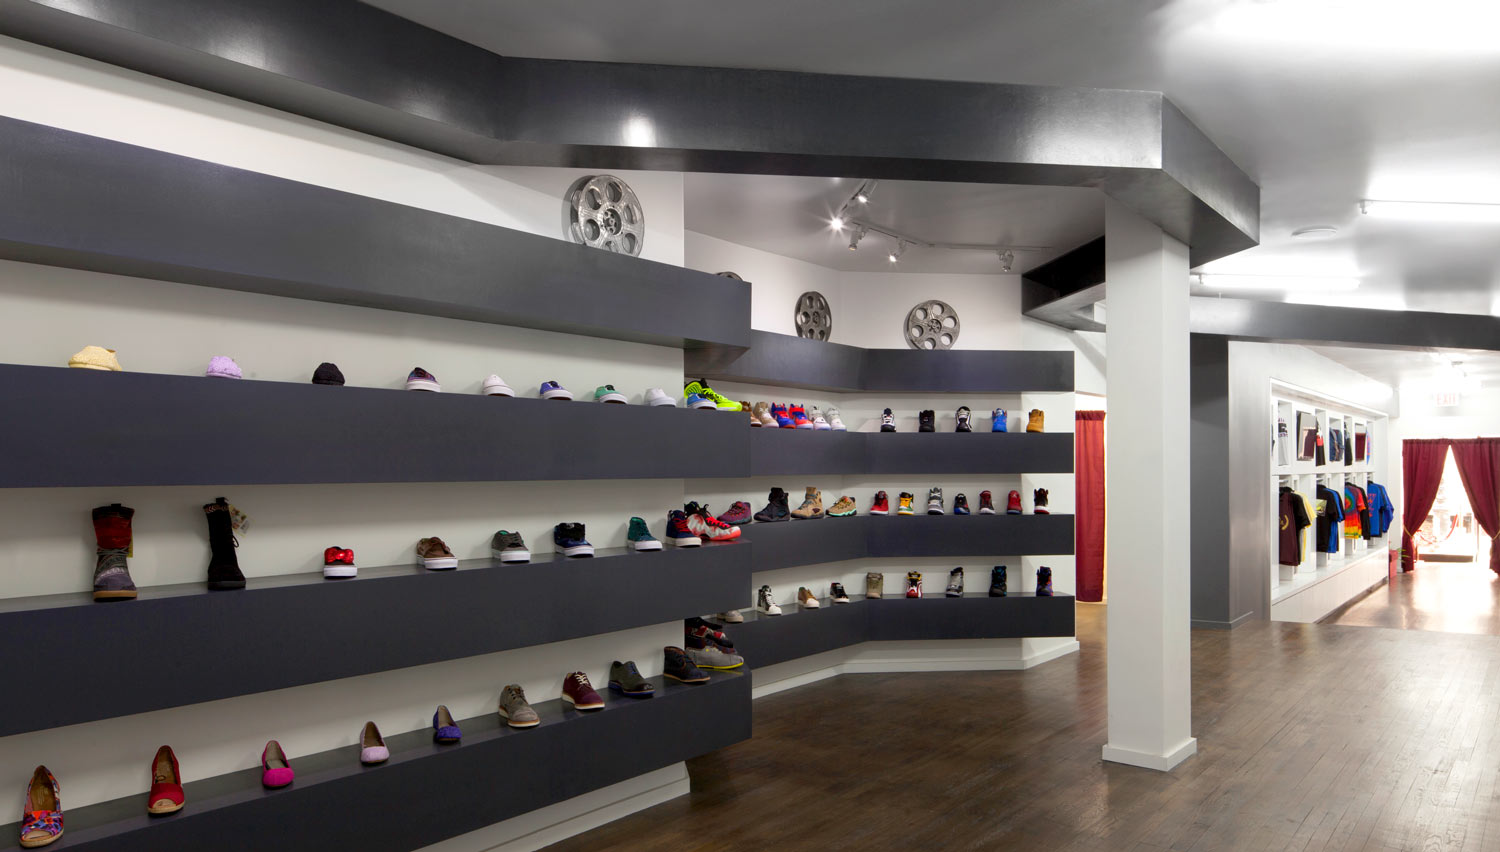 Wrapping Architectural ribbons of sneaker shelving